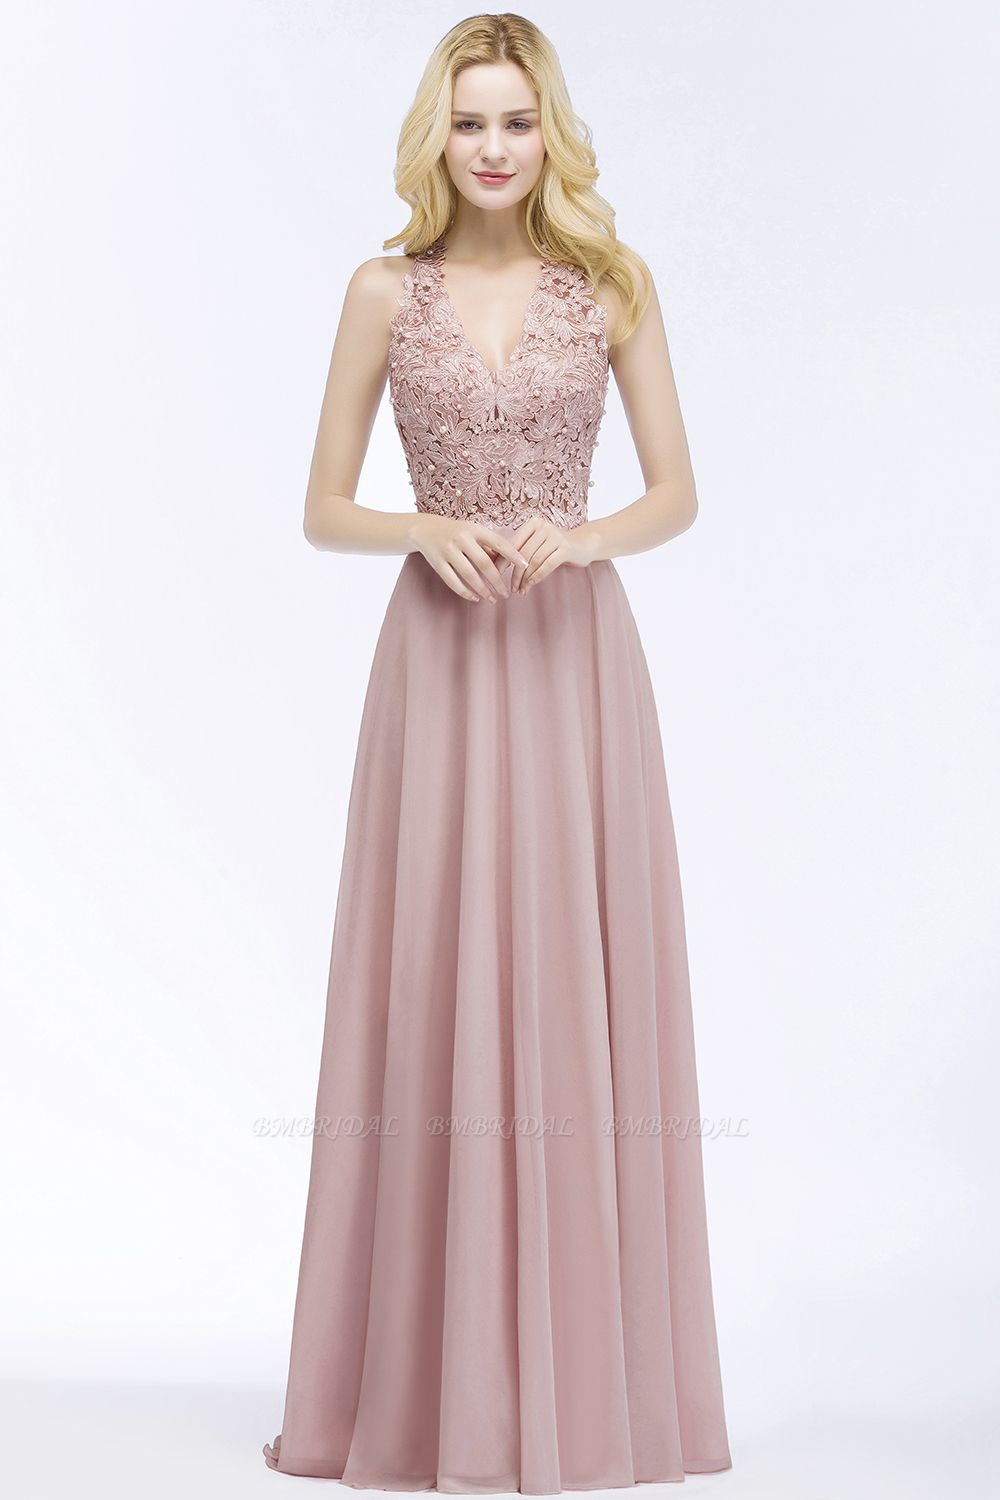 Chic Lace V-neck Pink Chiffon Bridesmaid Dress with Pearls